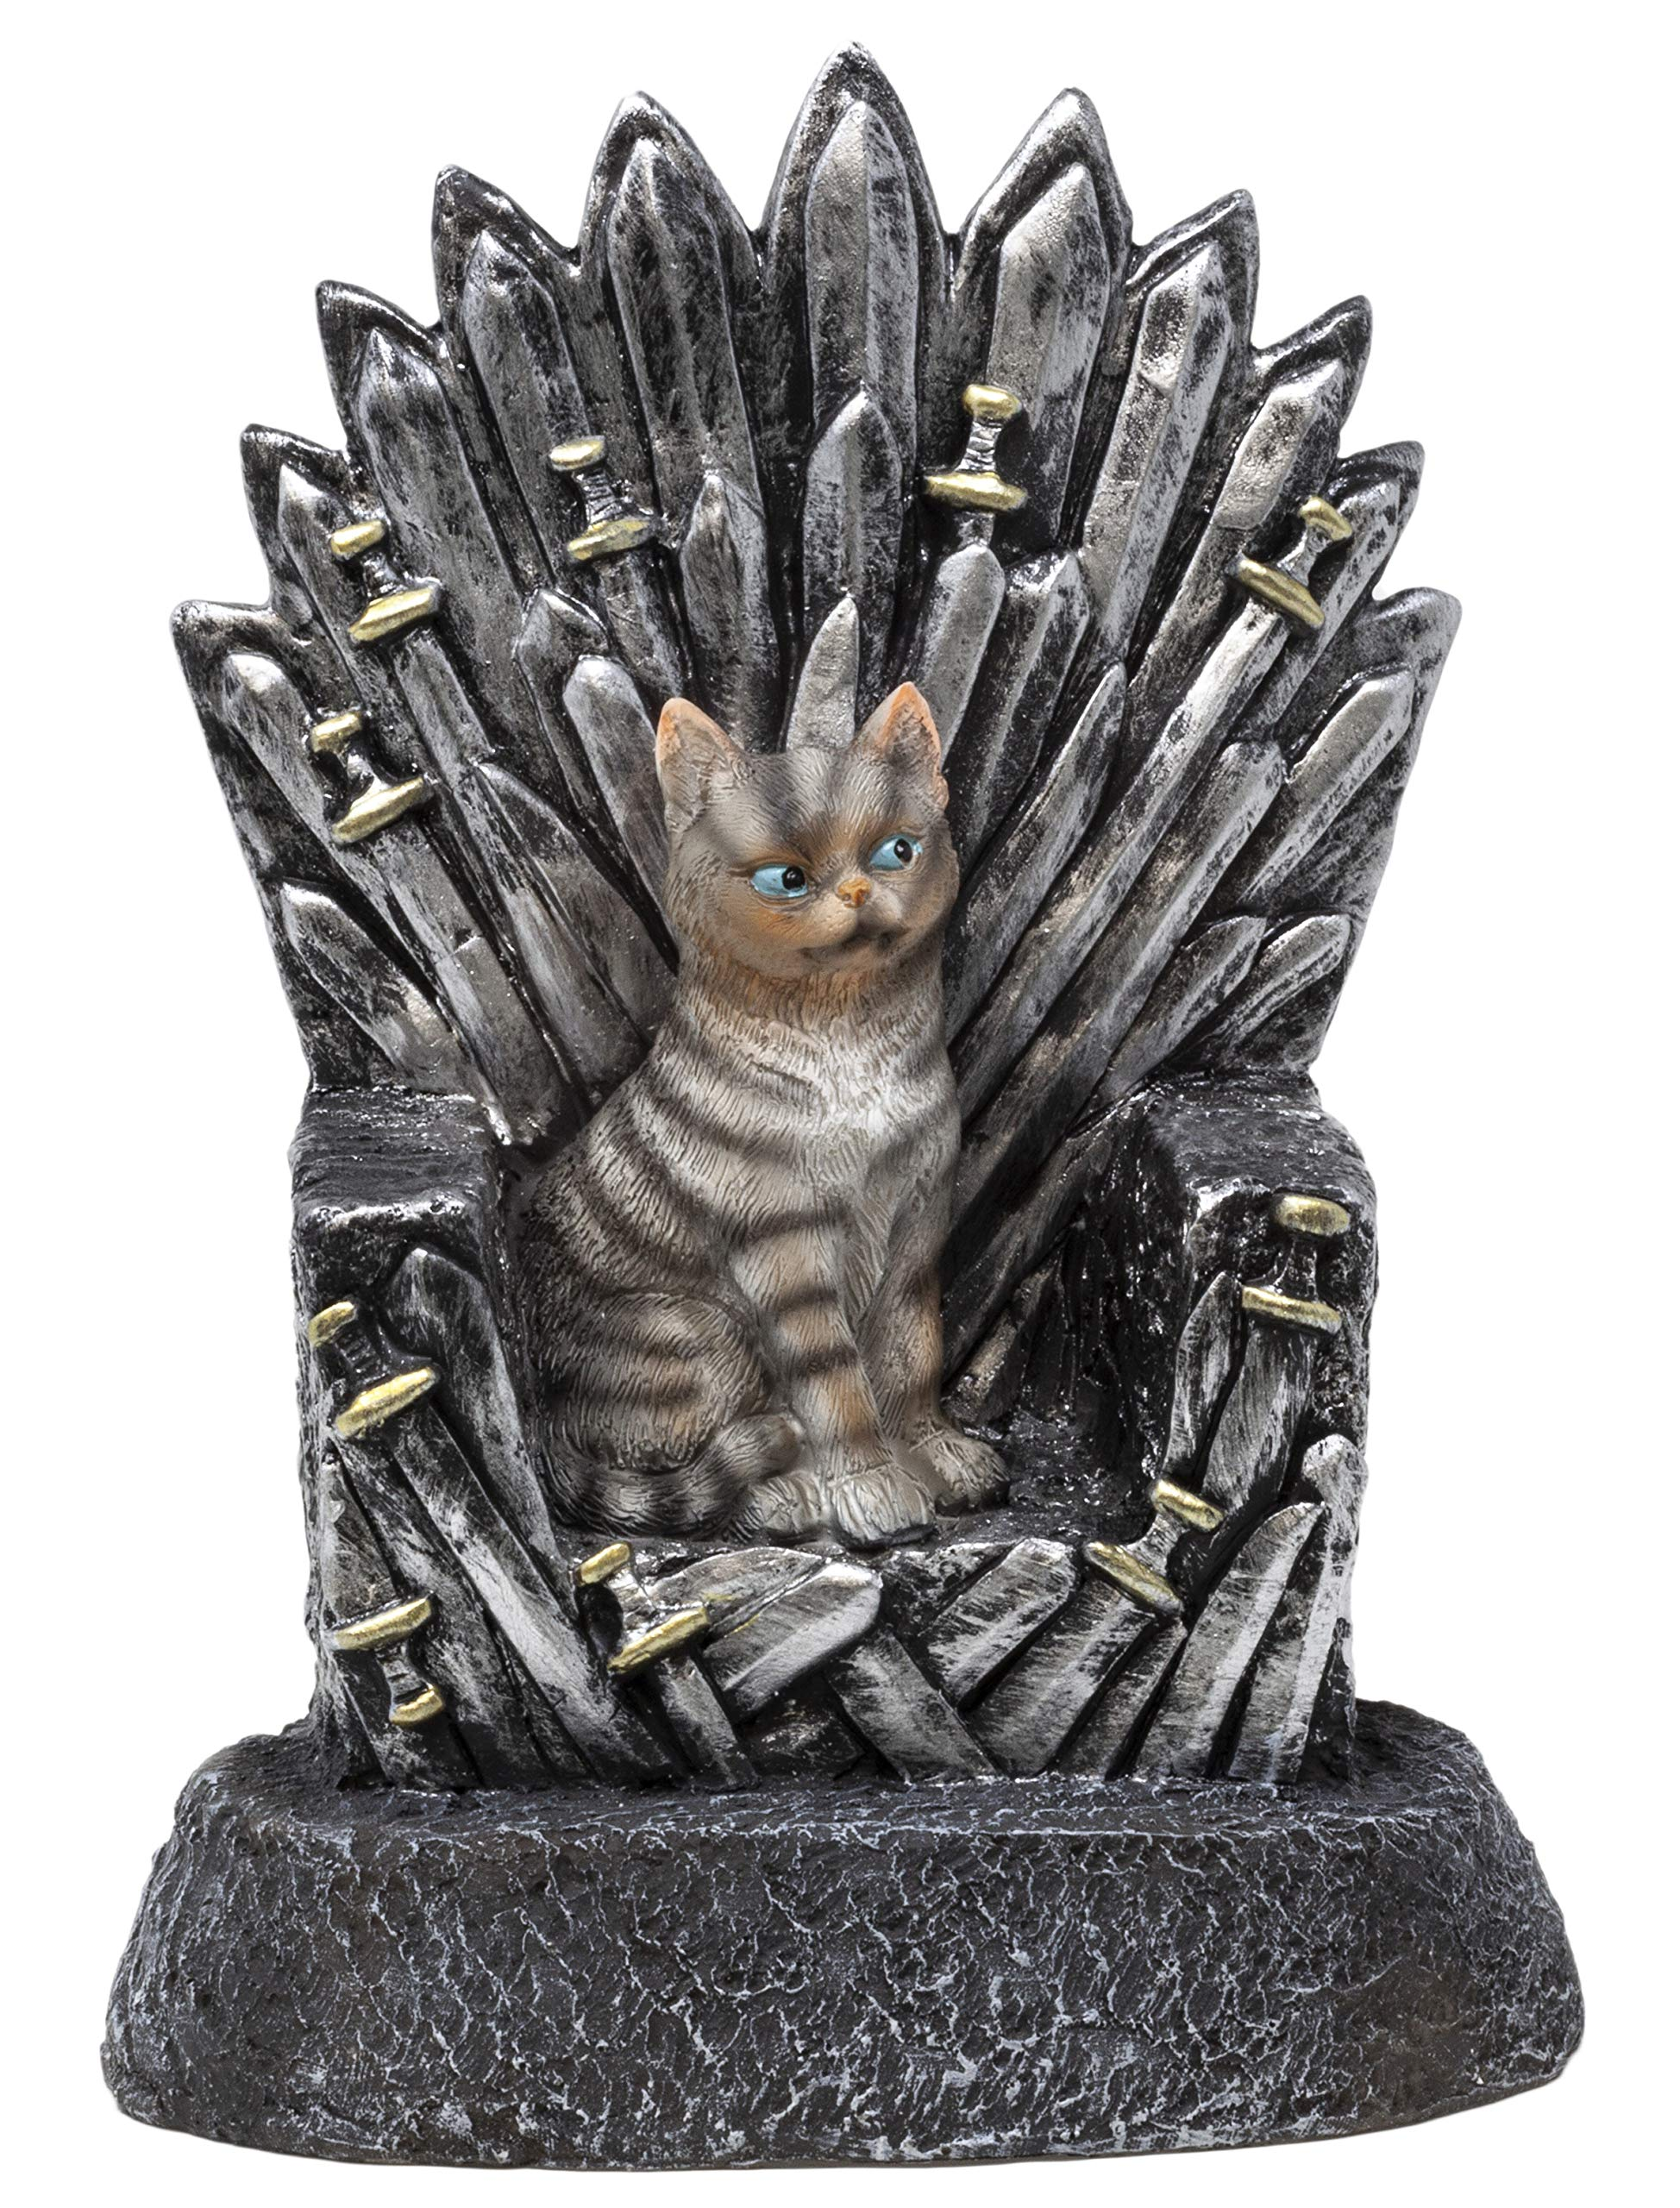 Funny Guy Mugs Cat On A Throne Garden Gnome Statue- Indoor/Outdoor Garden Gnome Sculpture Patio, Yard Lawn by Funny Guy Mugs